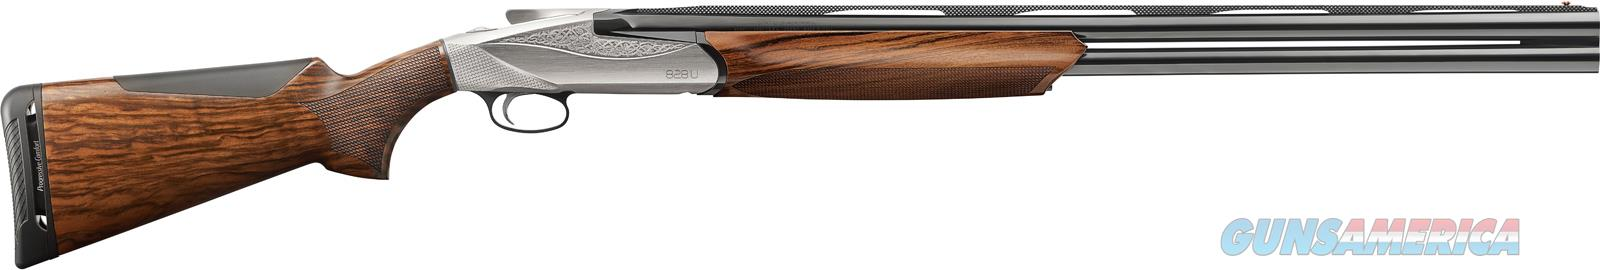 "Benelli 828U FIELD 12GA 28"" NICKEL       Guns > Shotguns > Benelli Shotguns > Sporting"